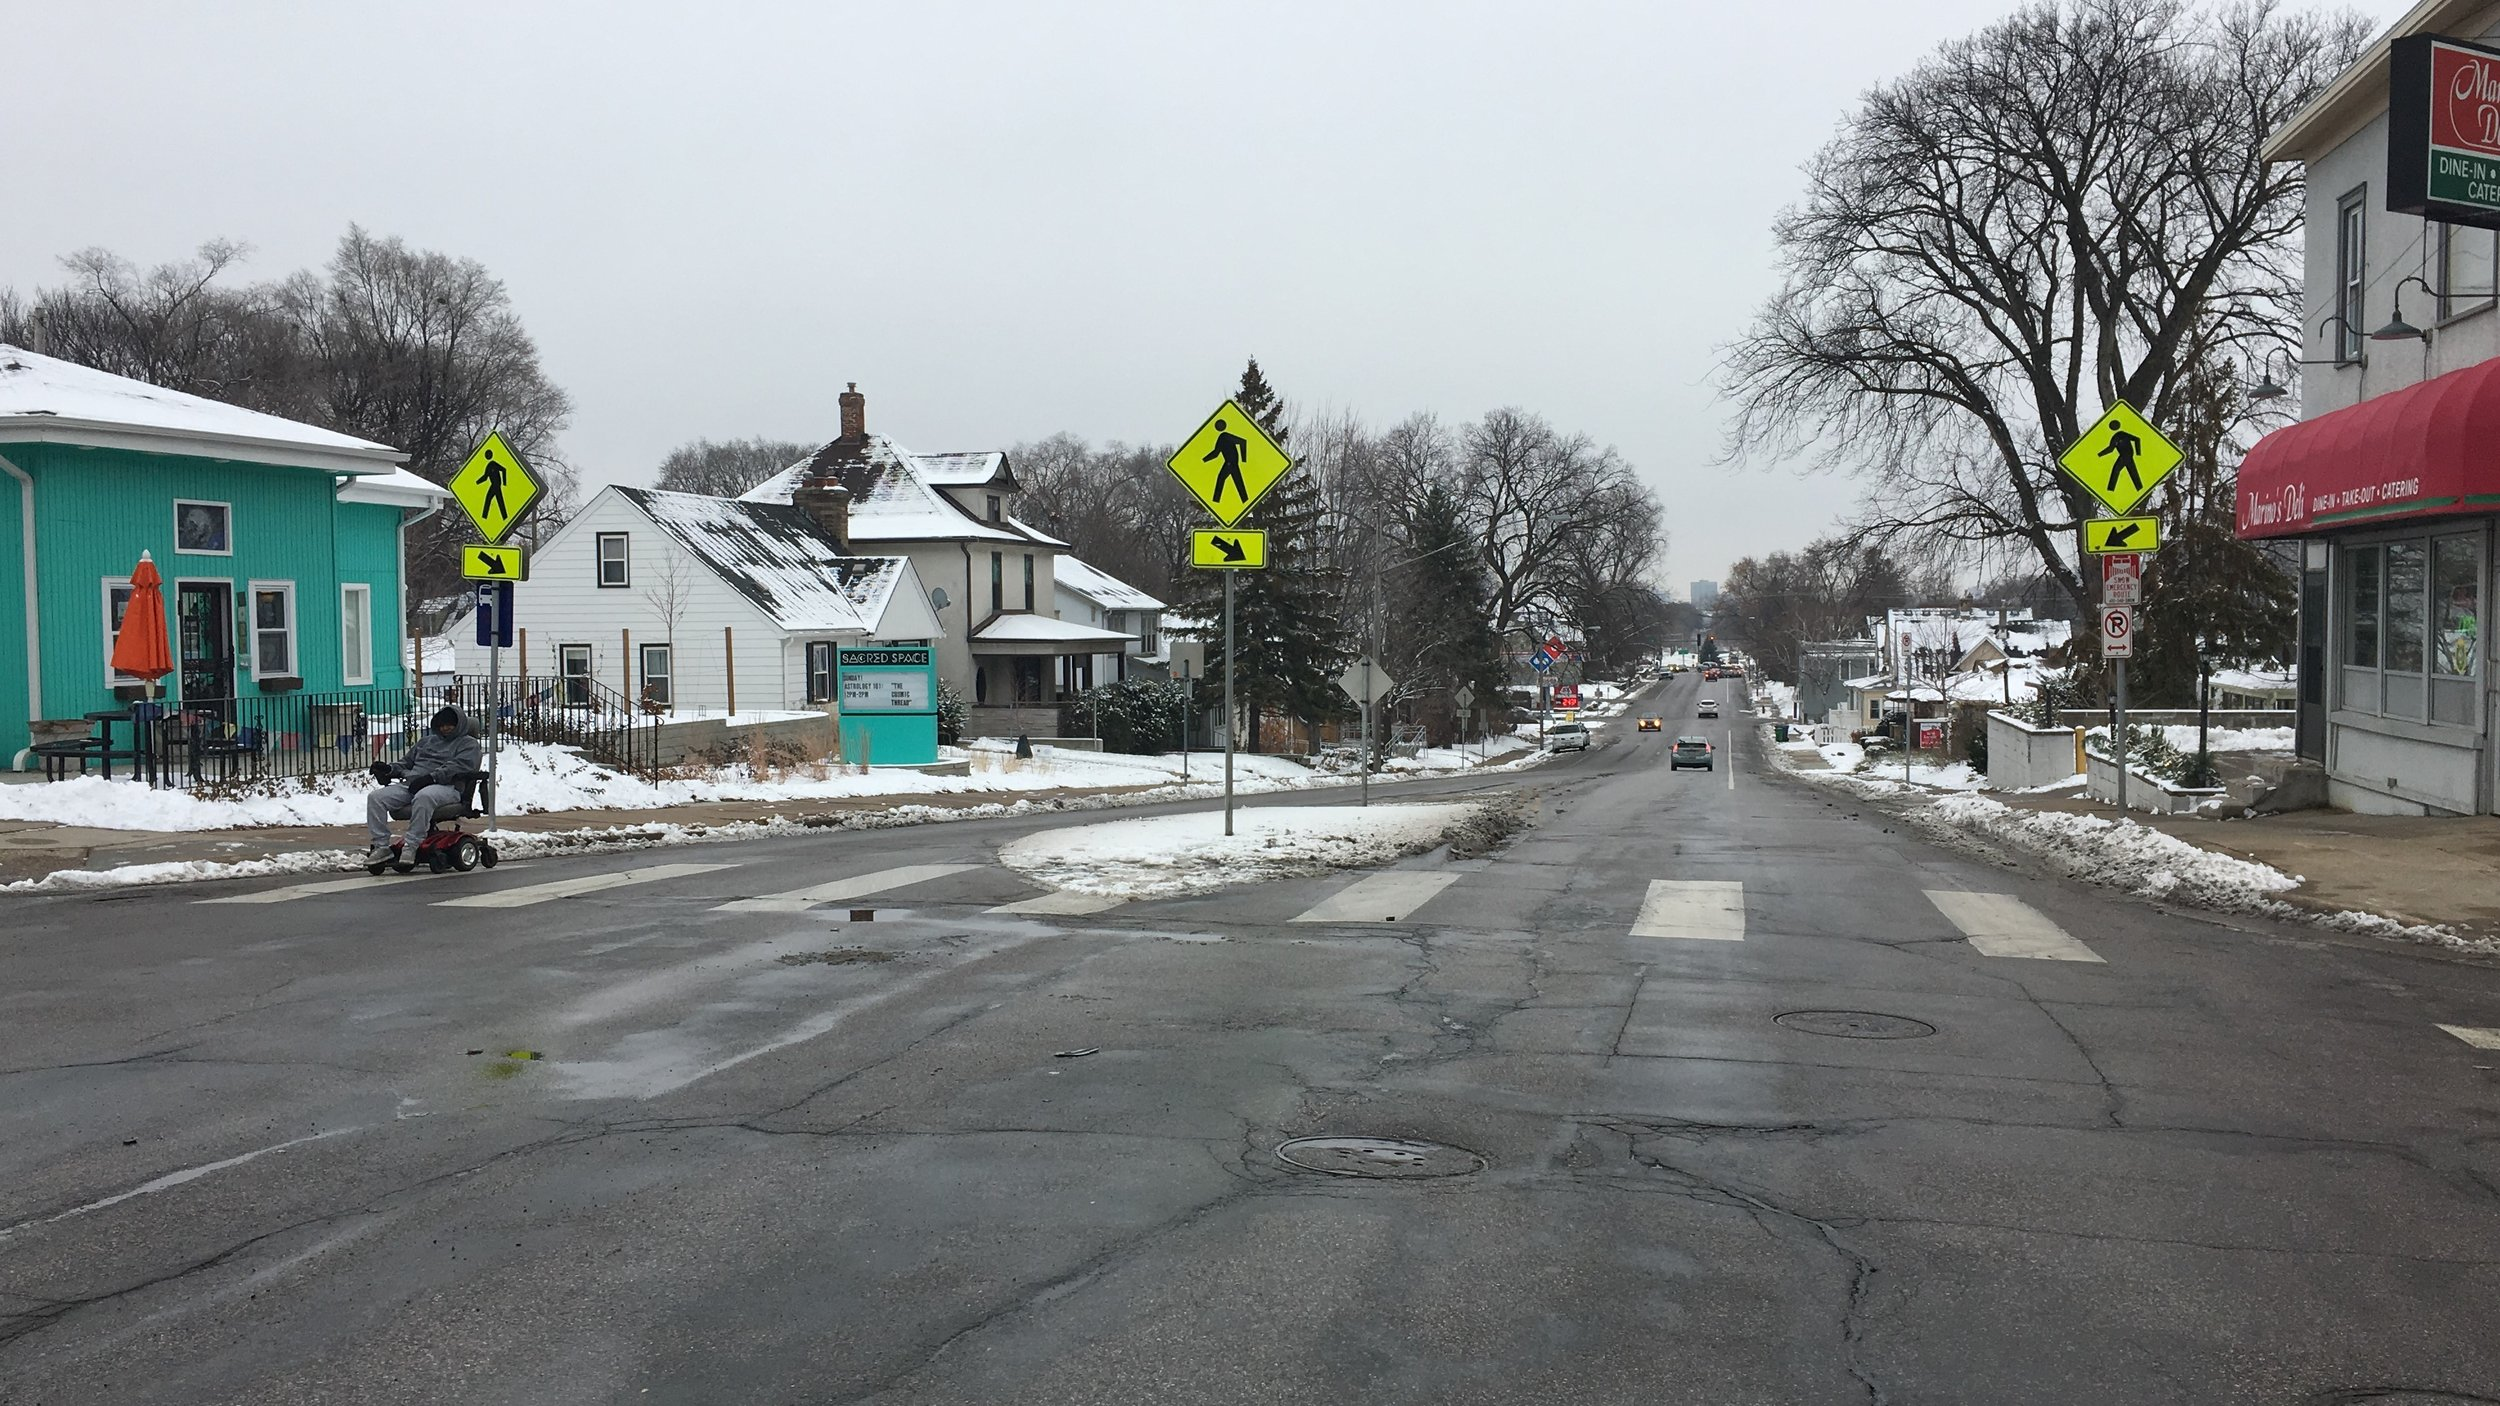 A suburban streetscape in winter, where a black man in a motorized wheelchair rolls in the street to avoid piles of snow around driveways and sidewalks. No cars are coming.